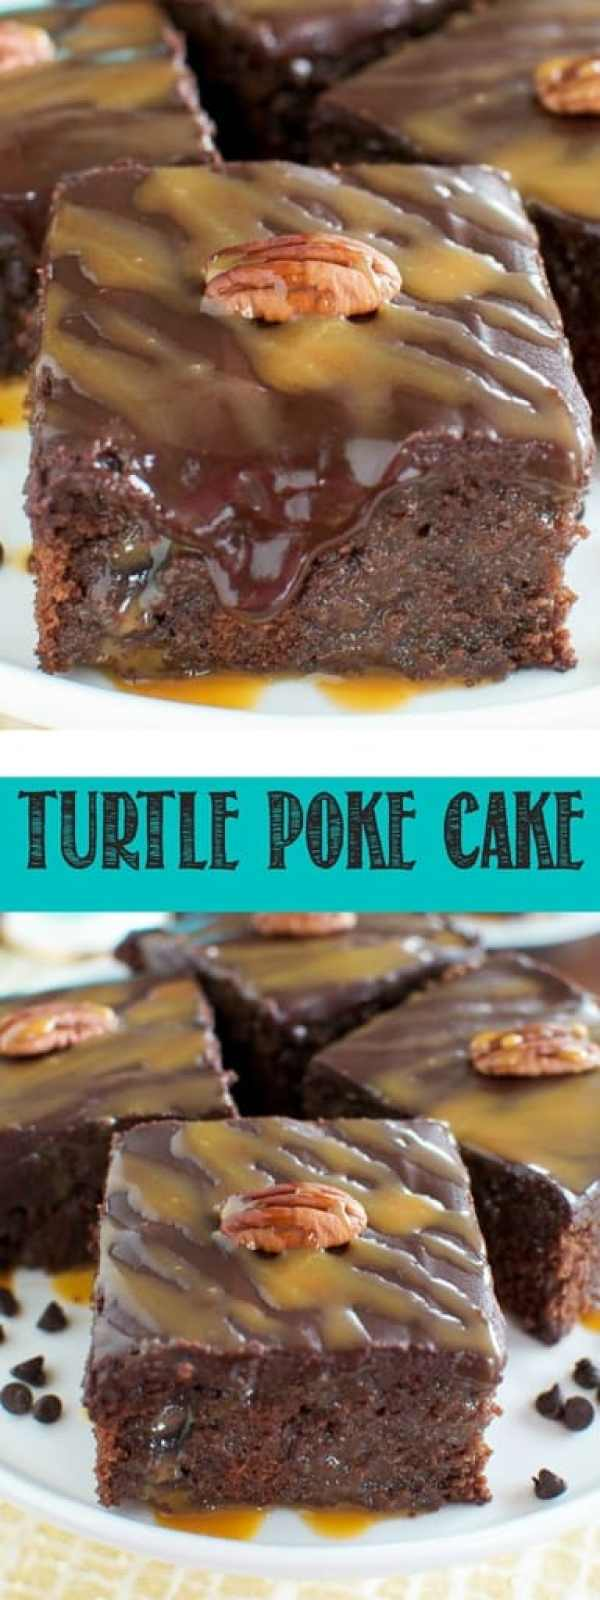 This Turtle Poke Cake is seriously the best cake ever!! Moist chocolate cake, made from scratch,  is filled with gooey caramel, and topped with chocolate ganache and pecans! YUM!